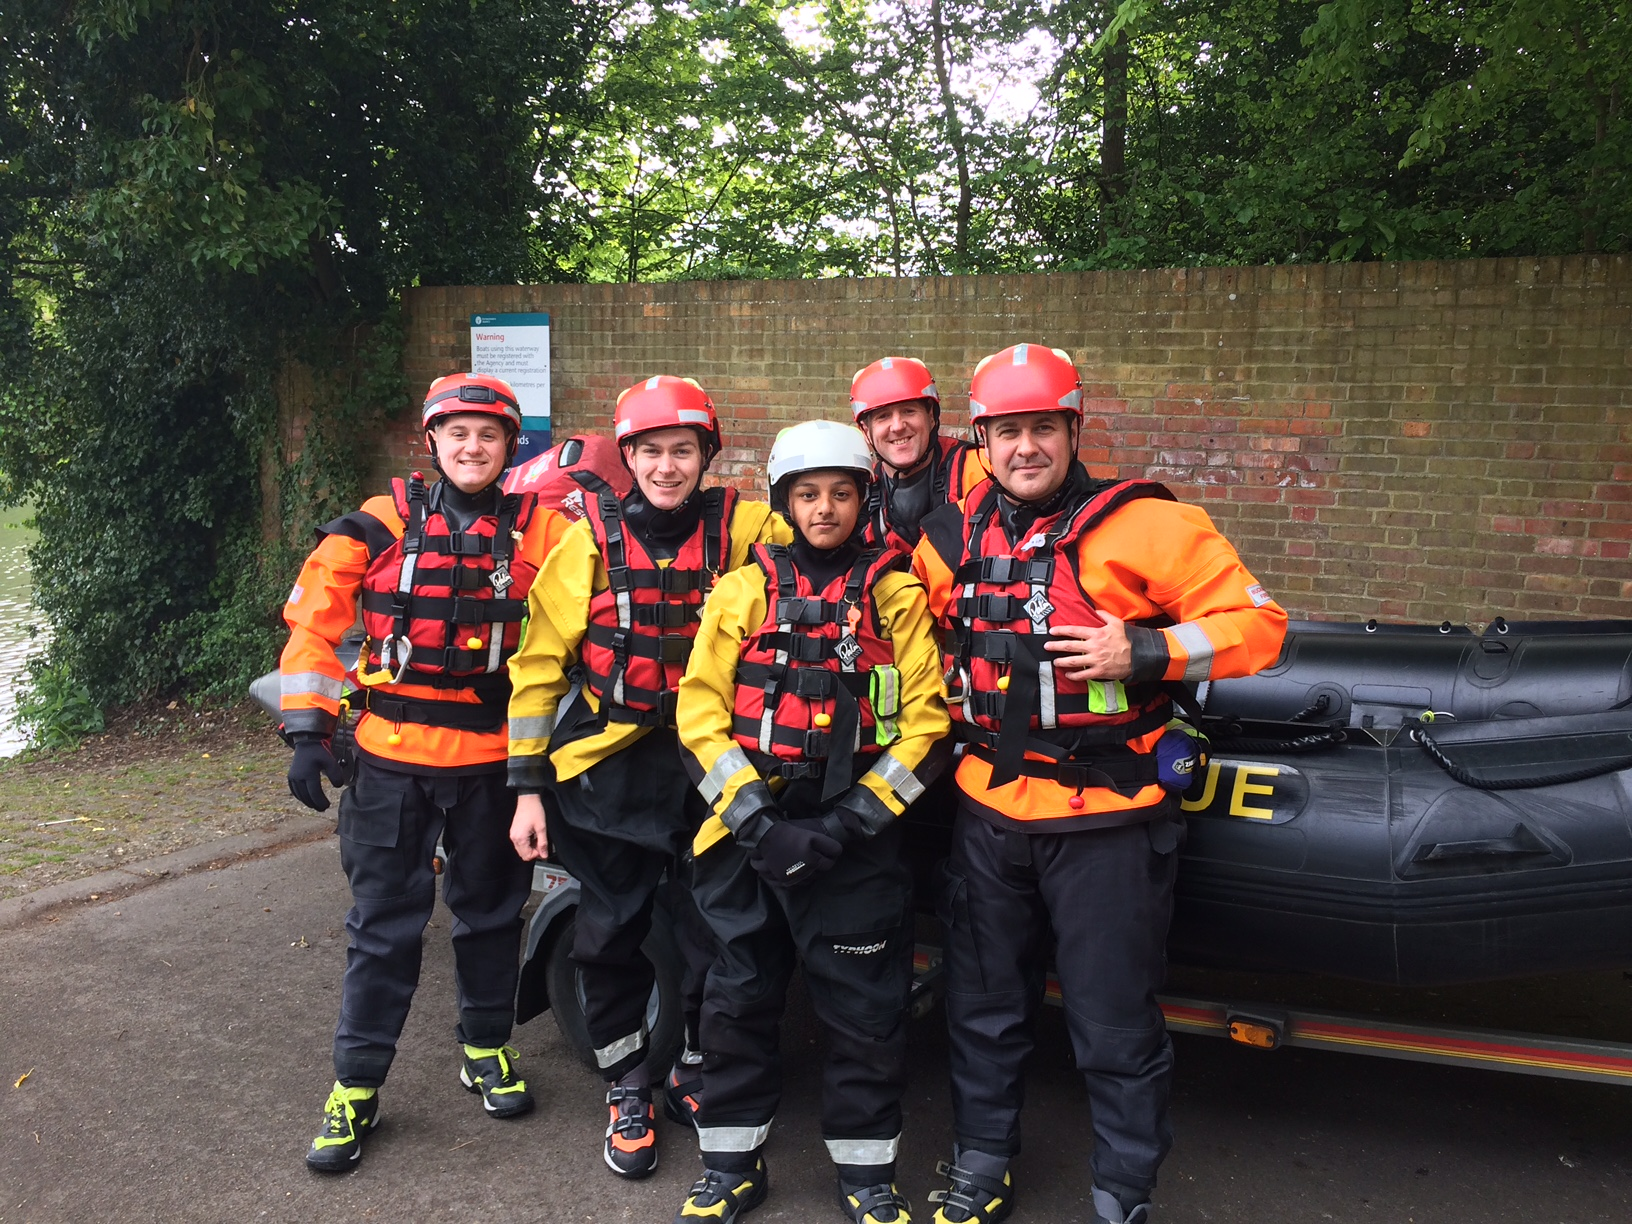 work experience group fully dressed in water kit